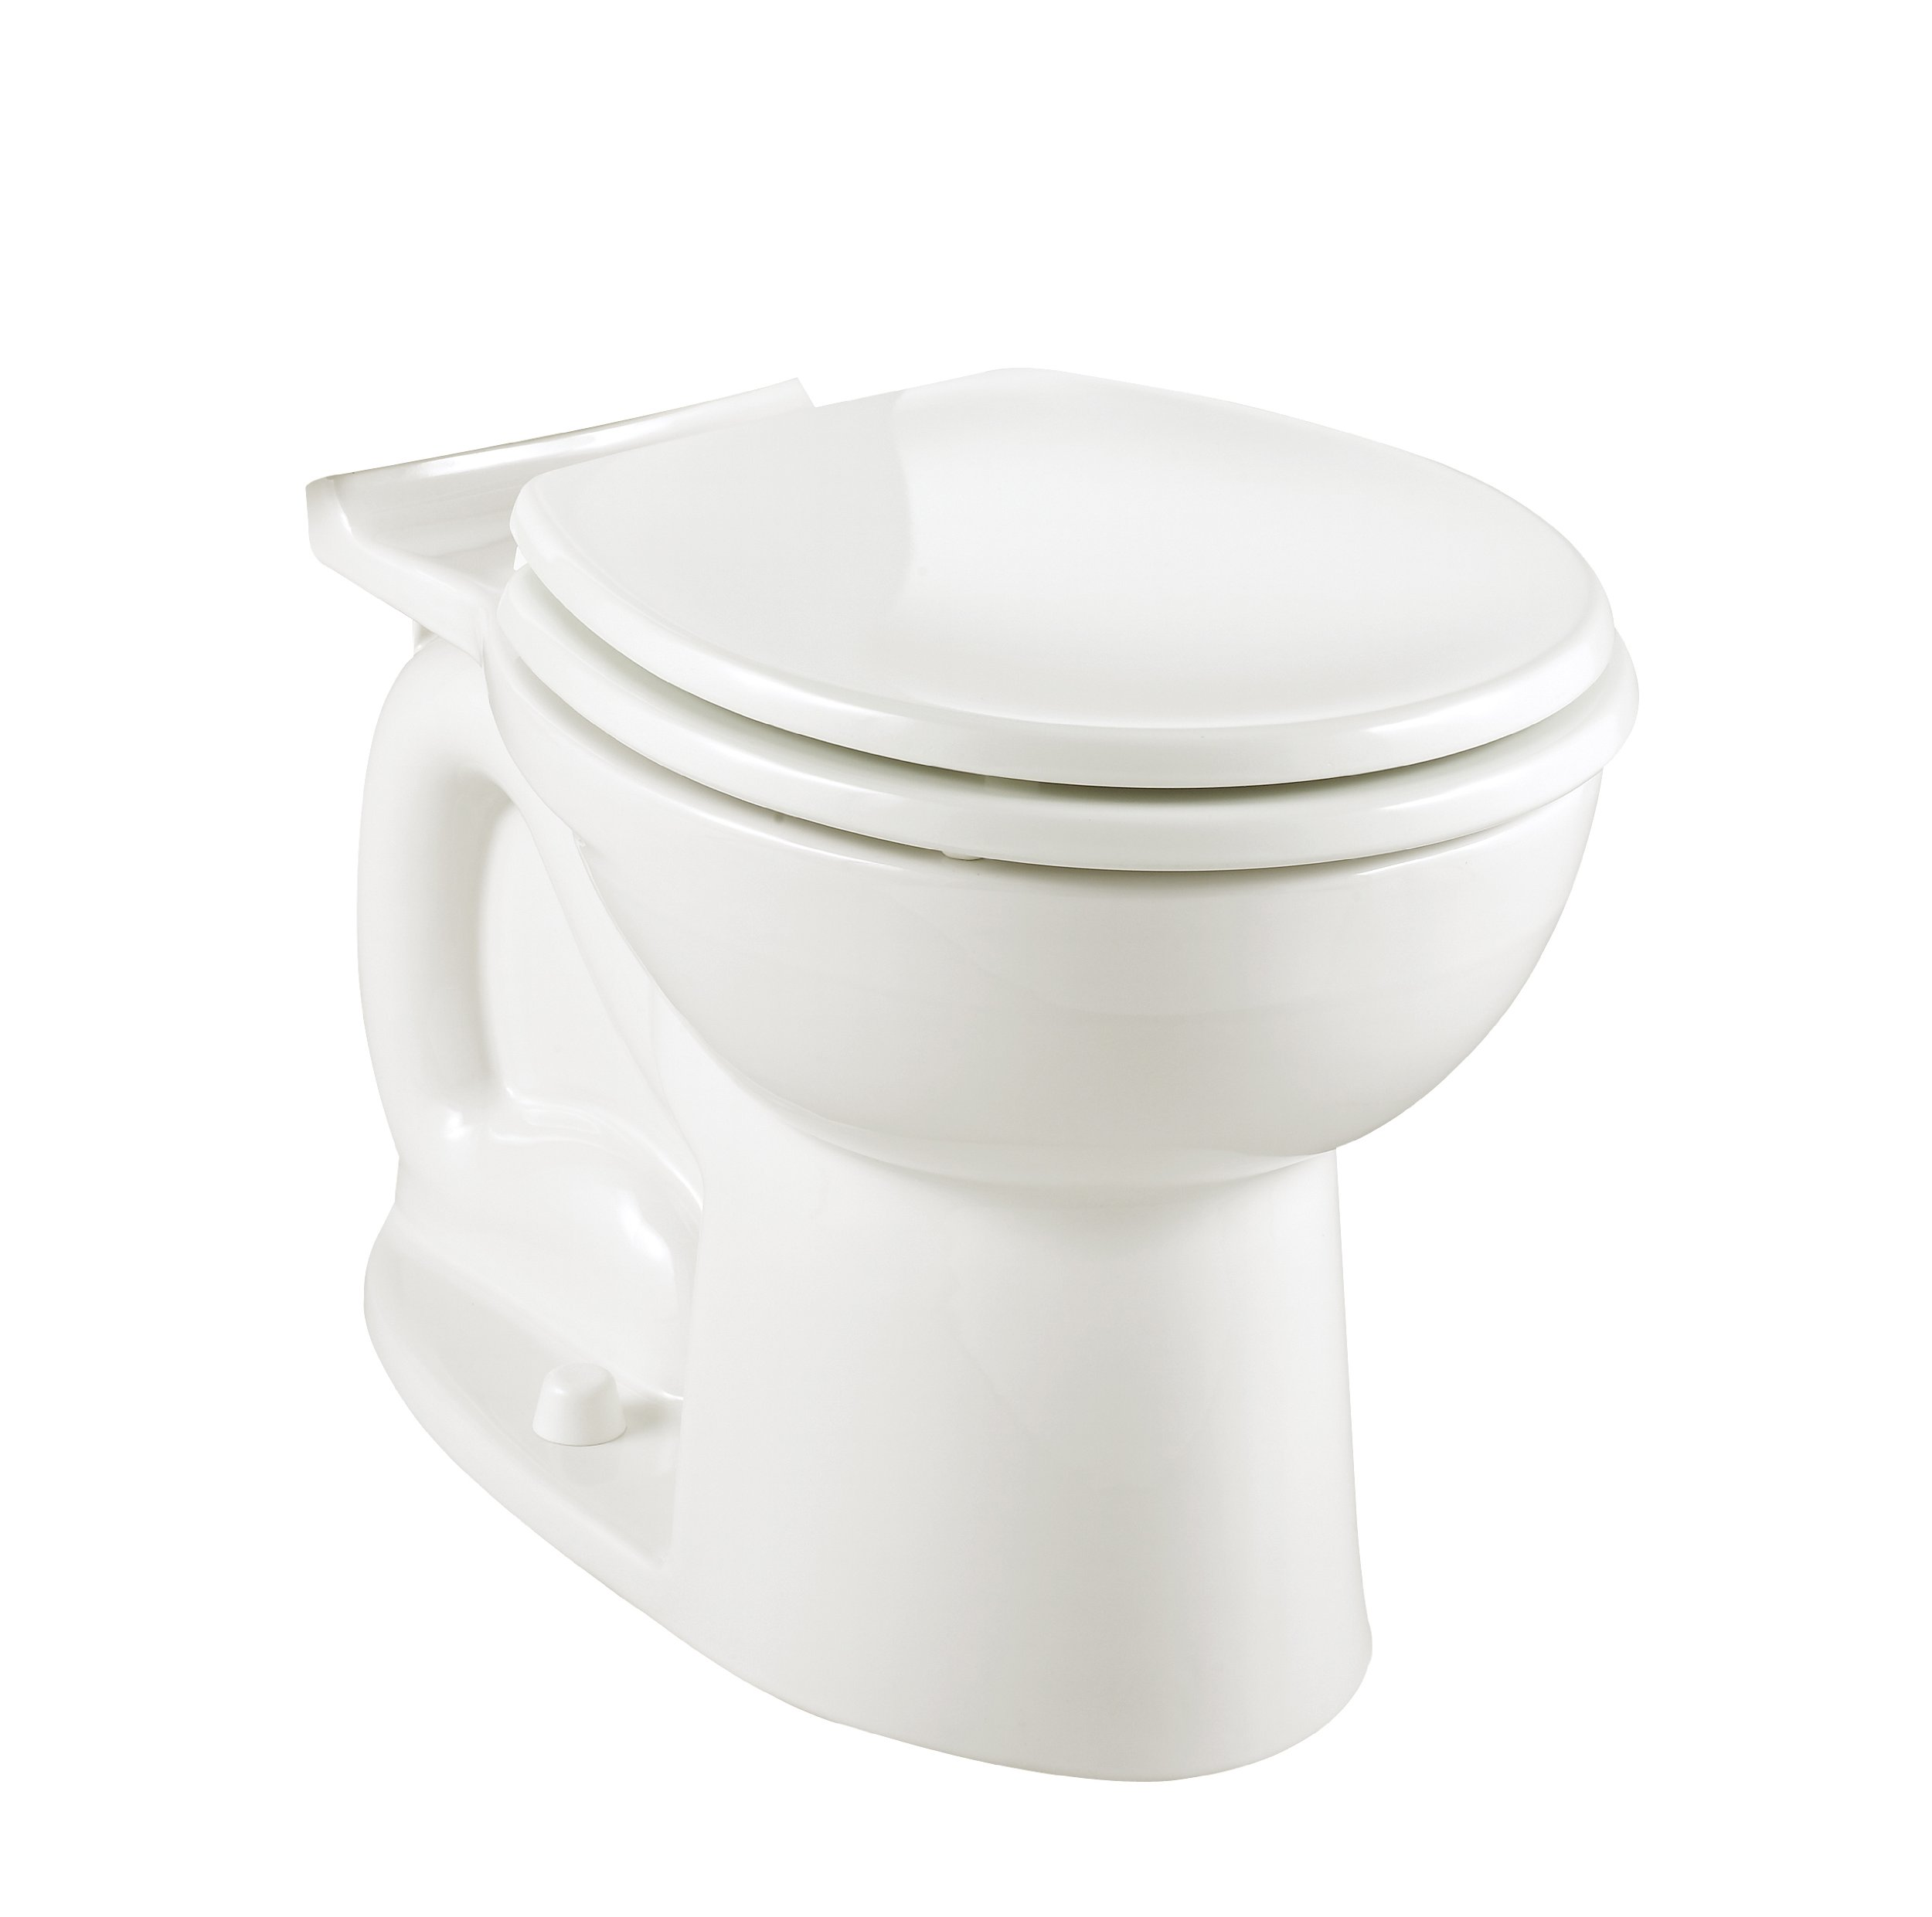 American Standard 3014.016.020 Cadet-3 Elongated Toilet Bowl with Bolt Caps, White (Bowl Only)